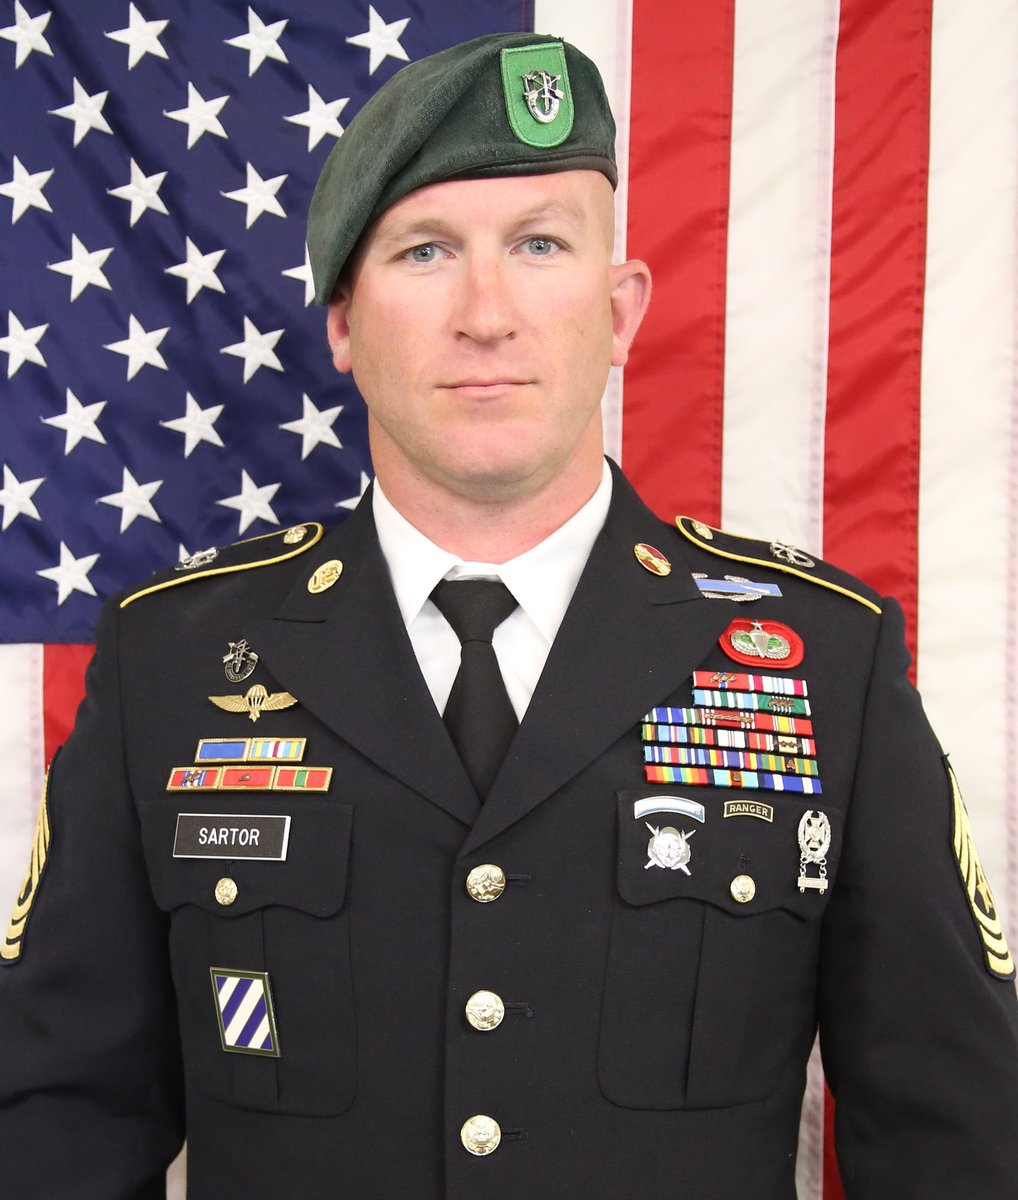 This is Sgt. Maj. James G. Sartor. He was killed by small-arms fire in Afghanistan on Saturday, July 13 while deployed with 10th Special Forces Group.  Between Iraq and Afghanistan, Sartor was deployed in 2002, 2006, 2007, 2009, 2010, 2017 and 2019.  RIP.